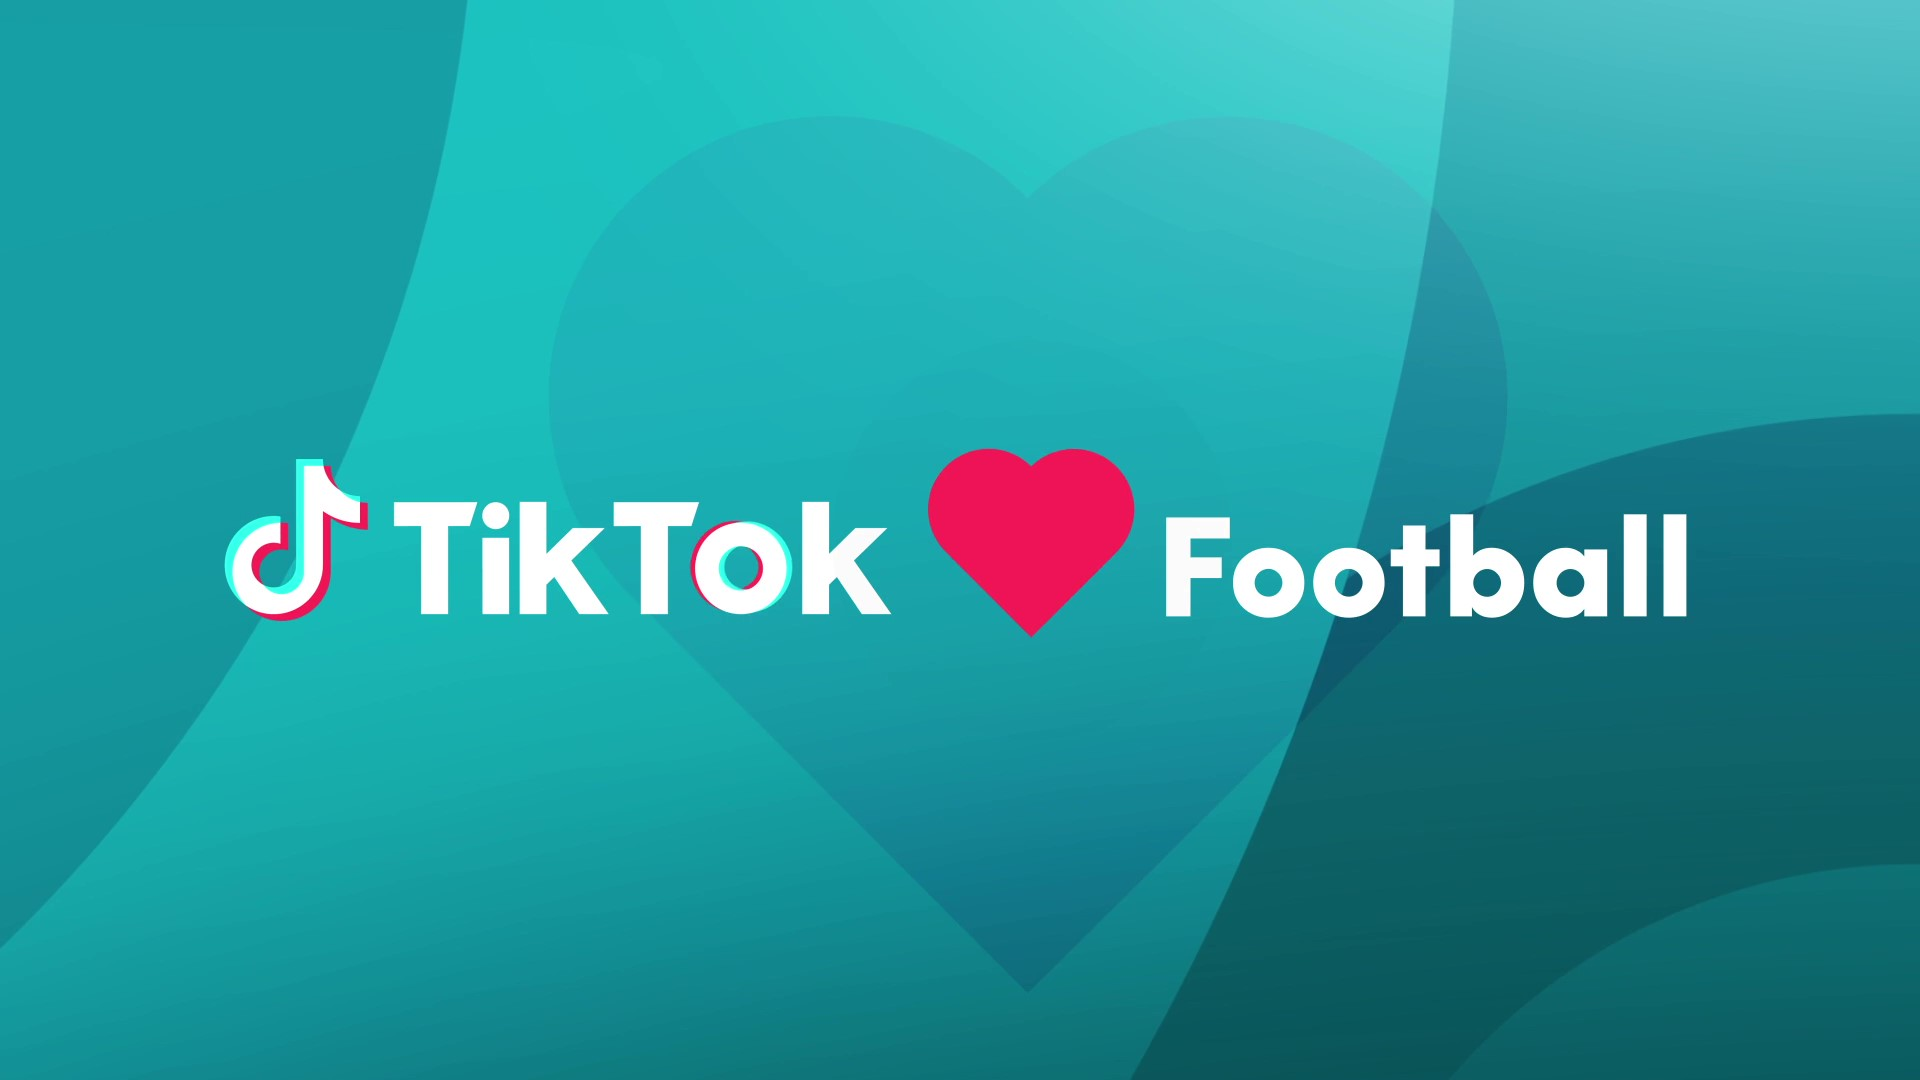 the-tiktok-creative-digest-combining-the-regions-love-for-football-and-creativity-for-a-winning-formula